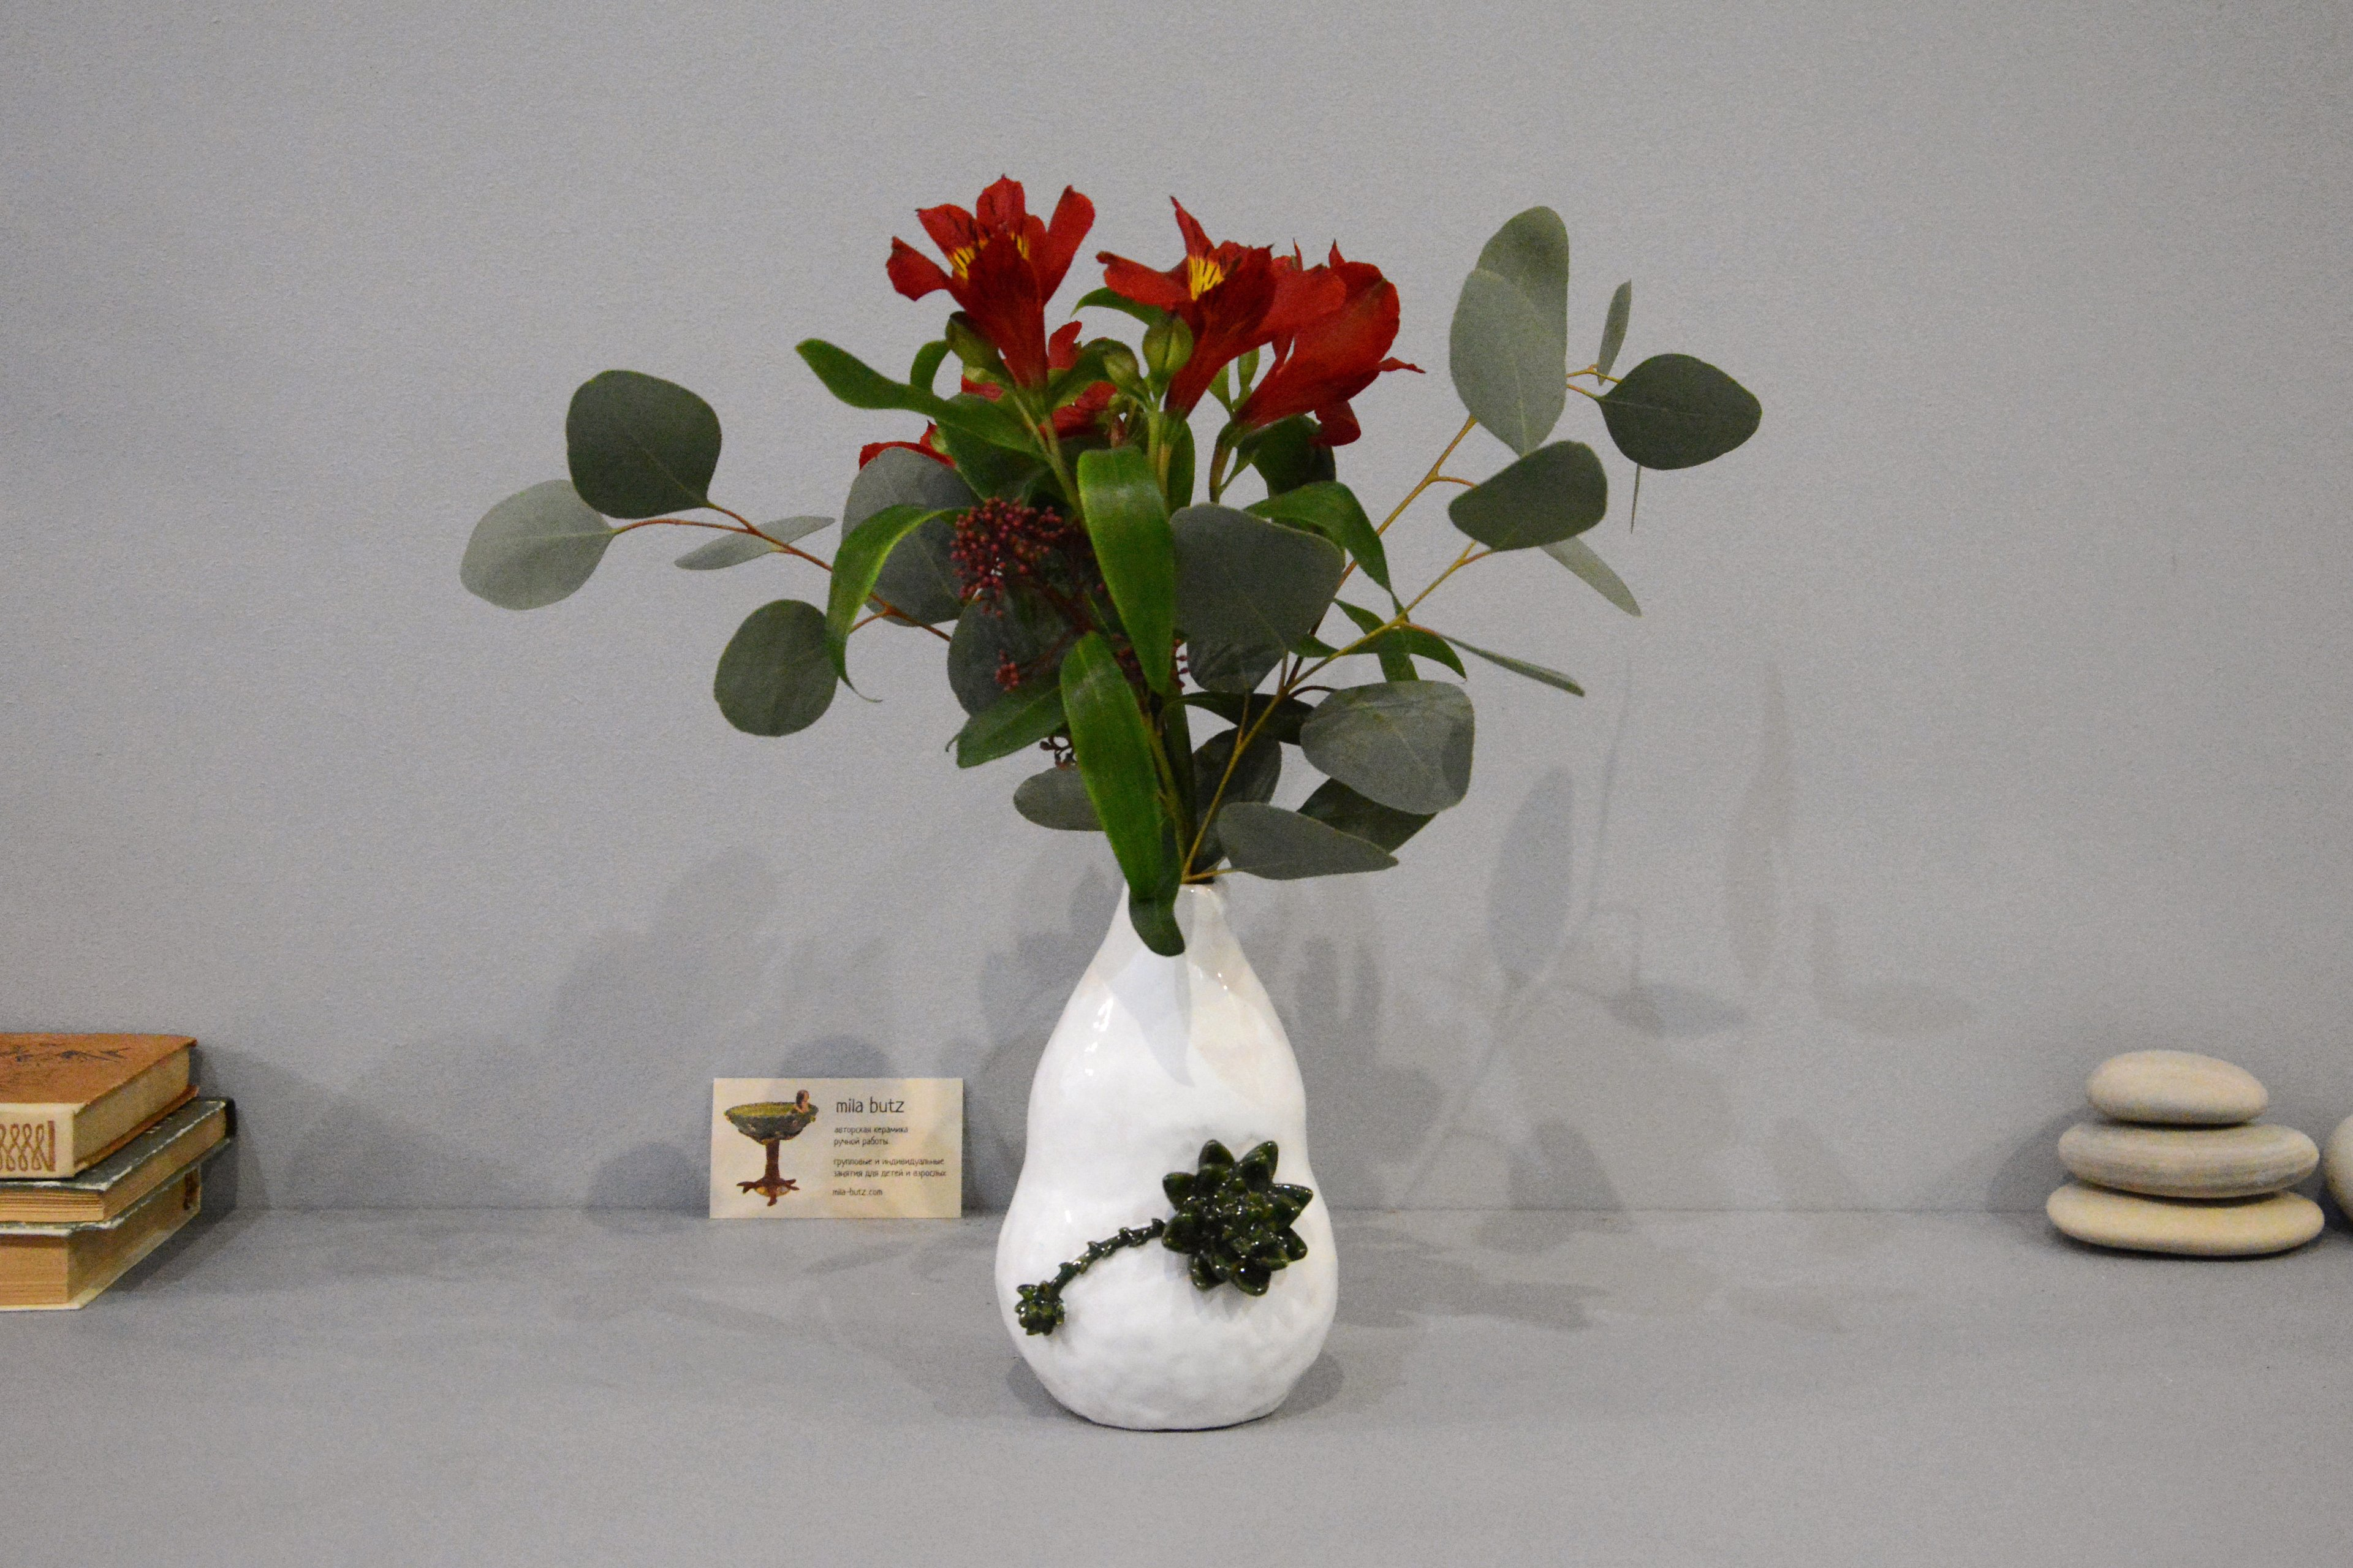 Small Vase or flowers «Echeveria», height - 16 cm, color - white. Photo 1401.